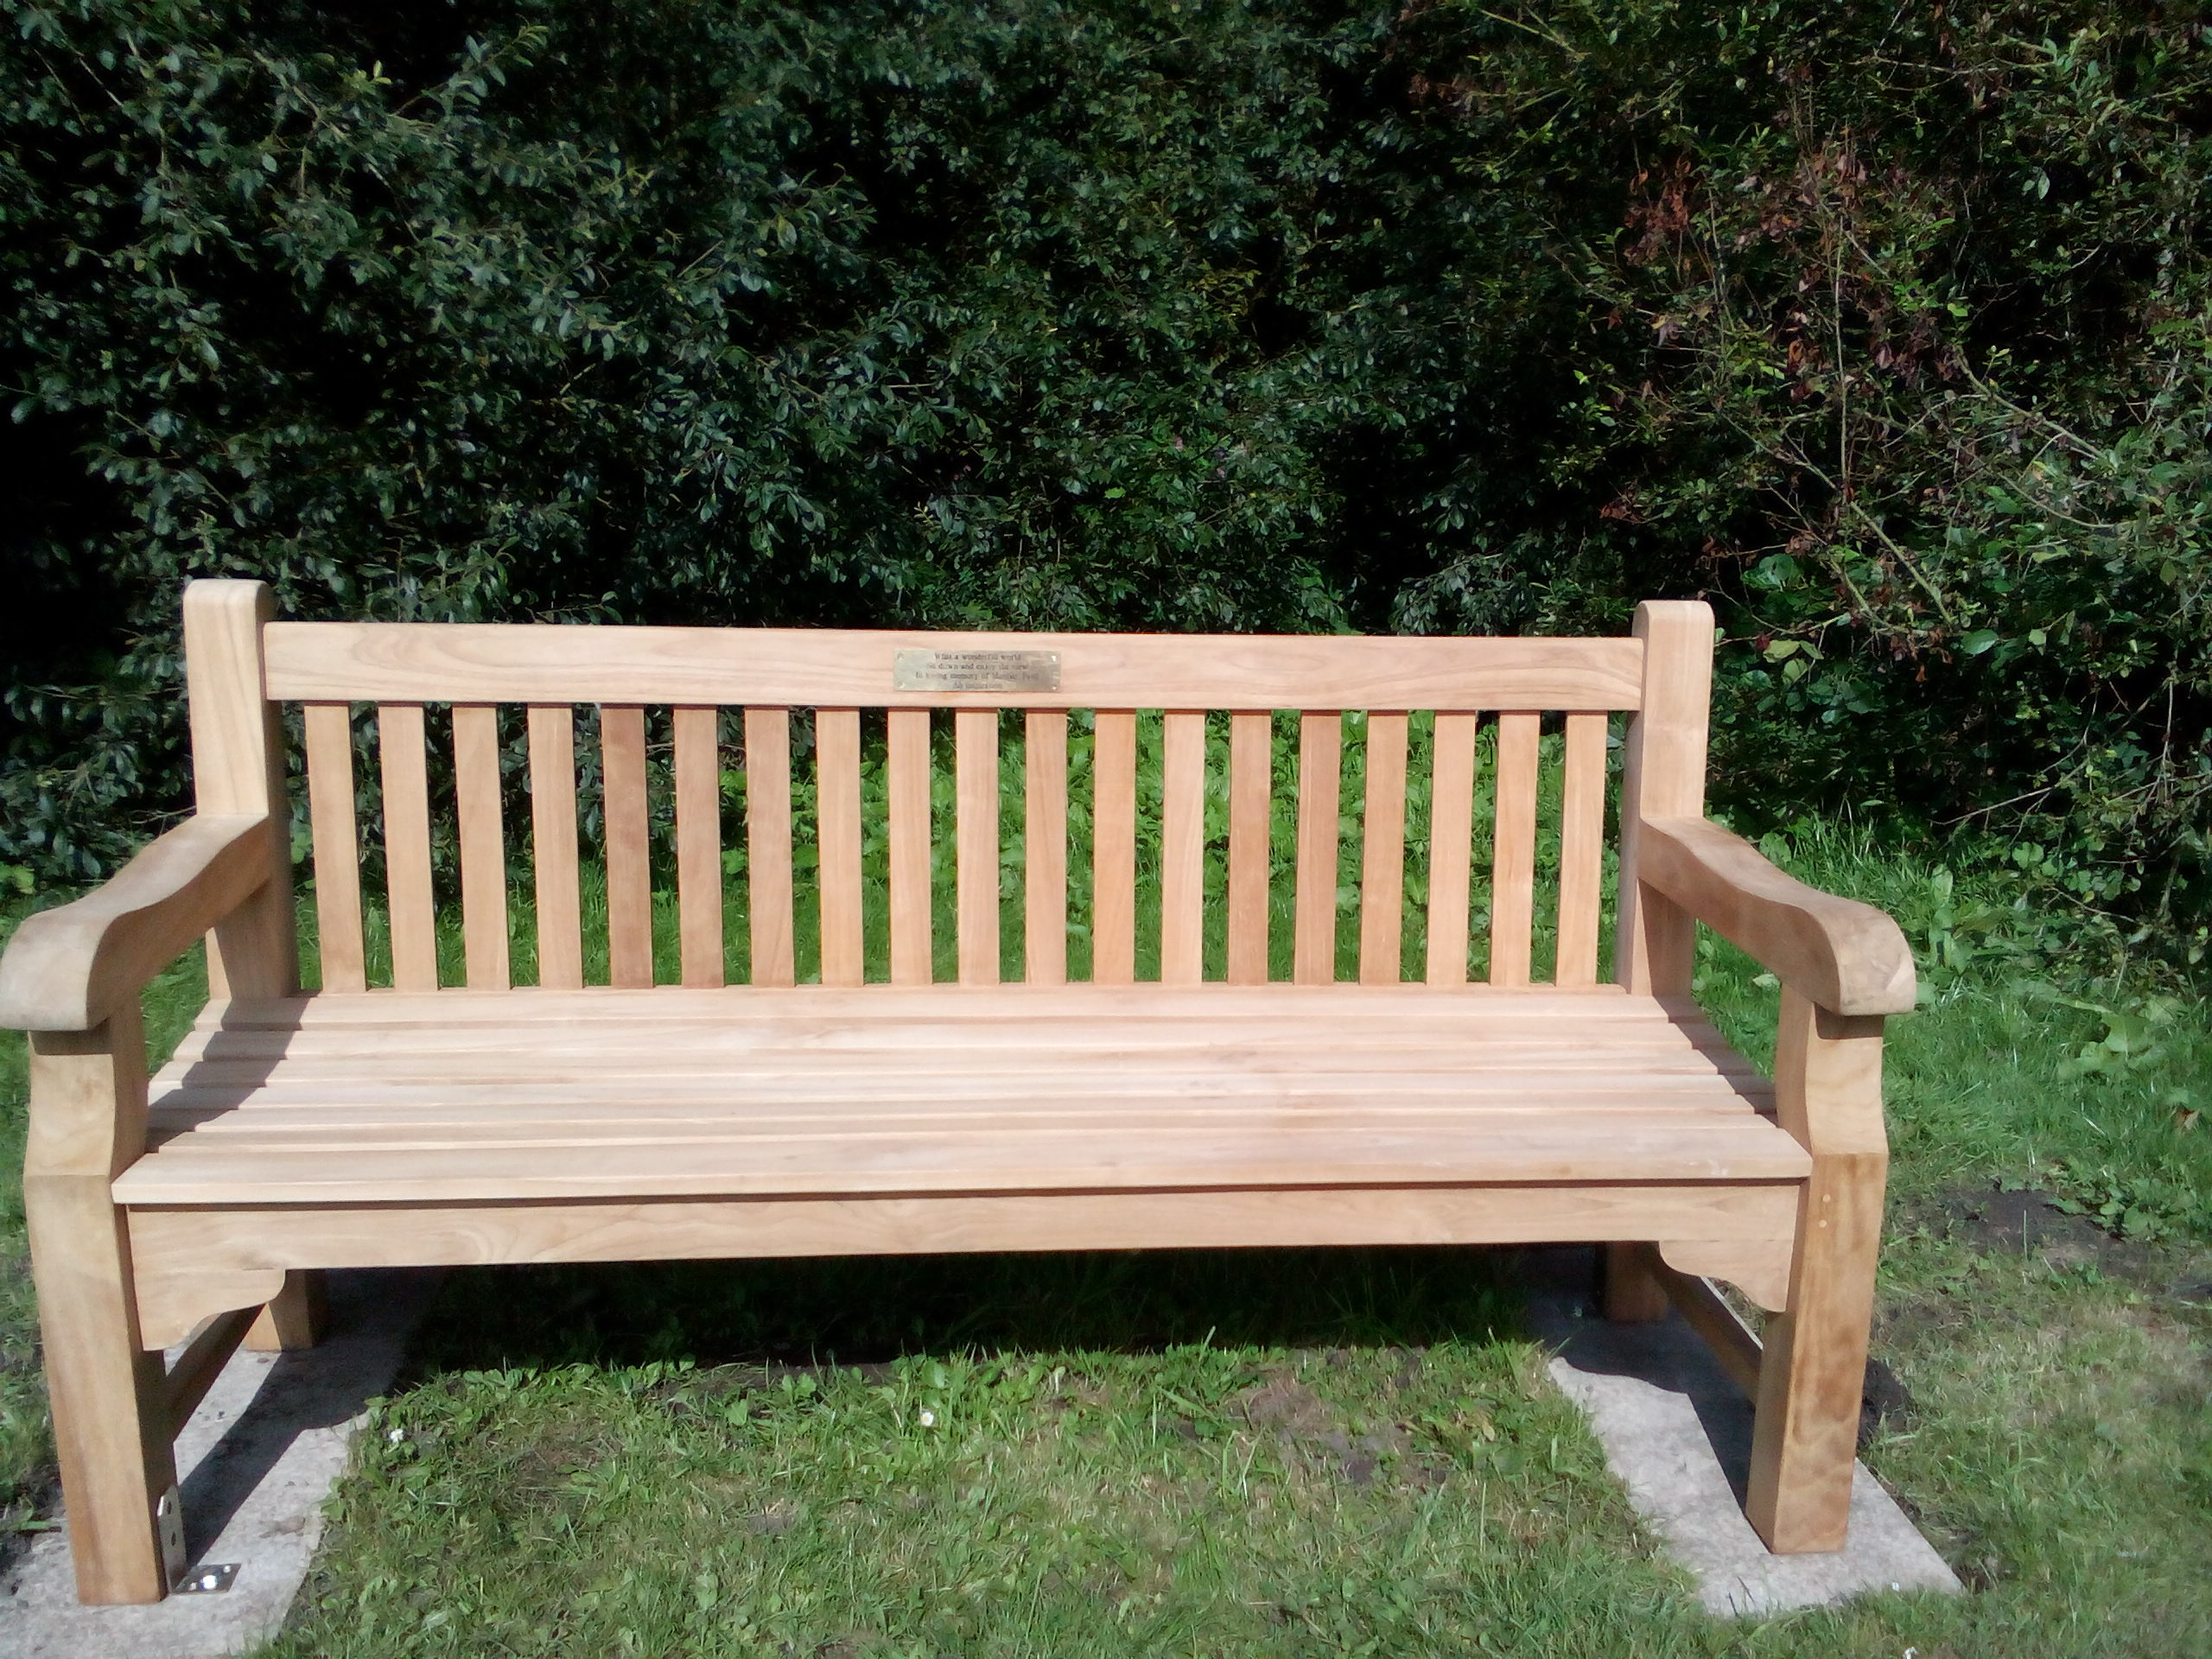 My father's bench